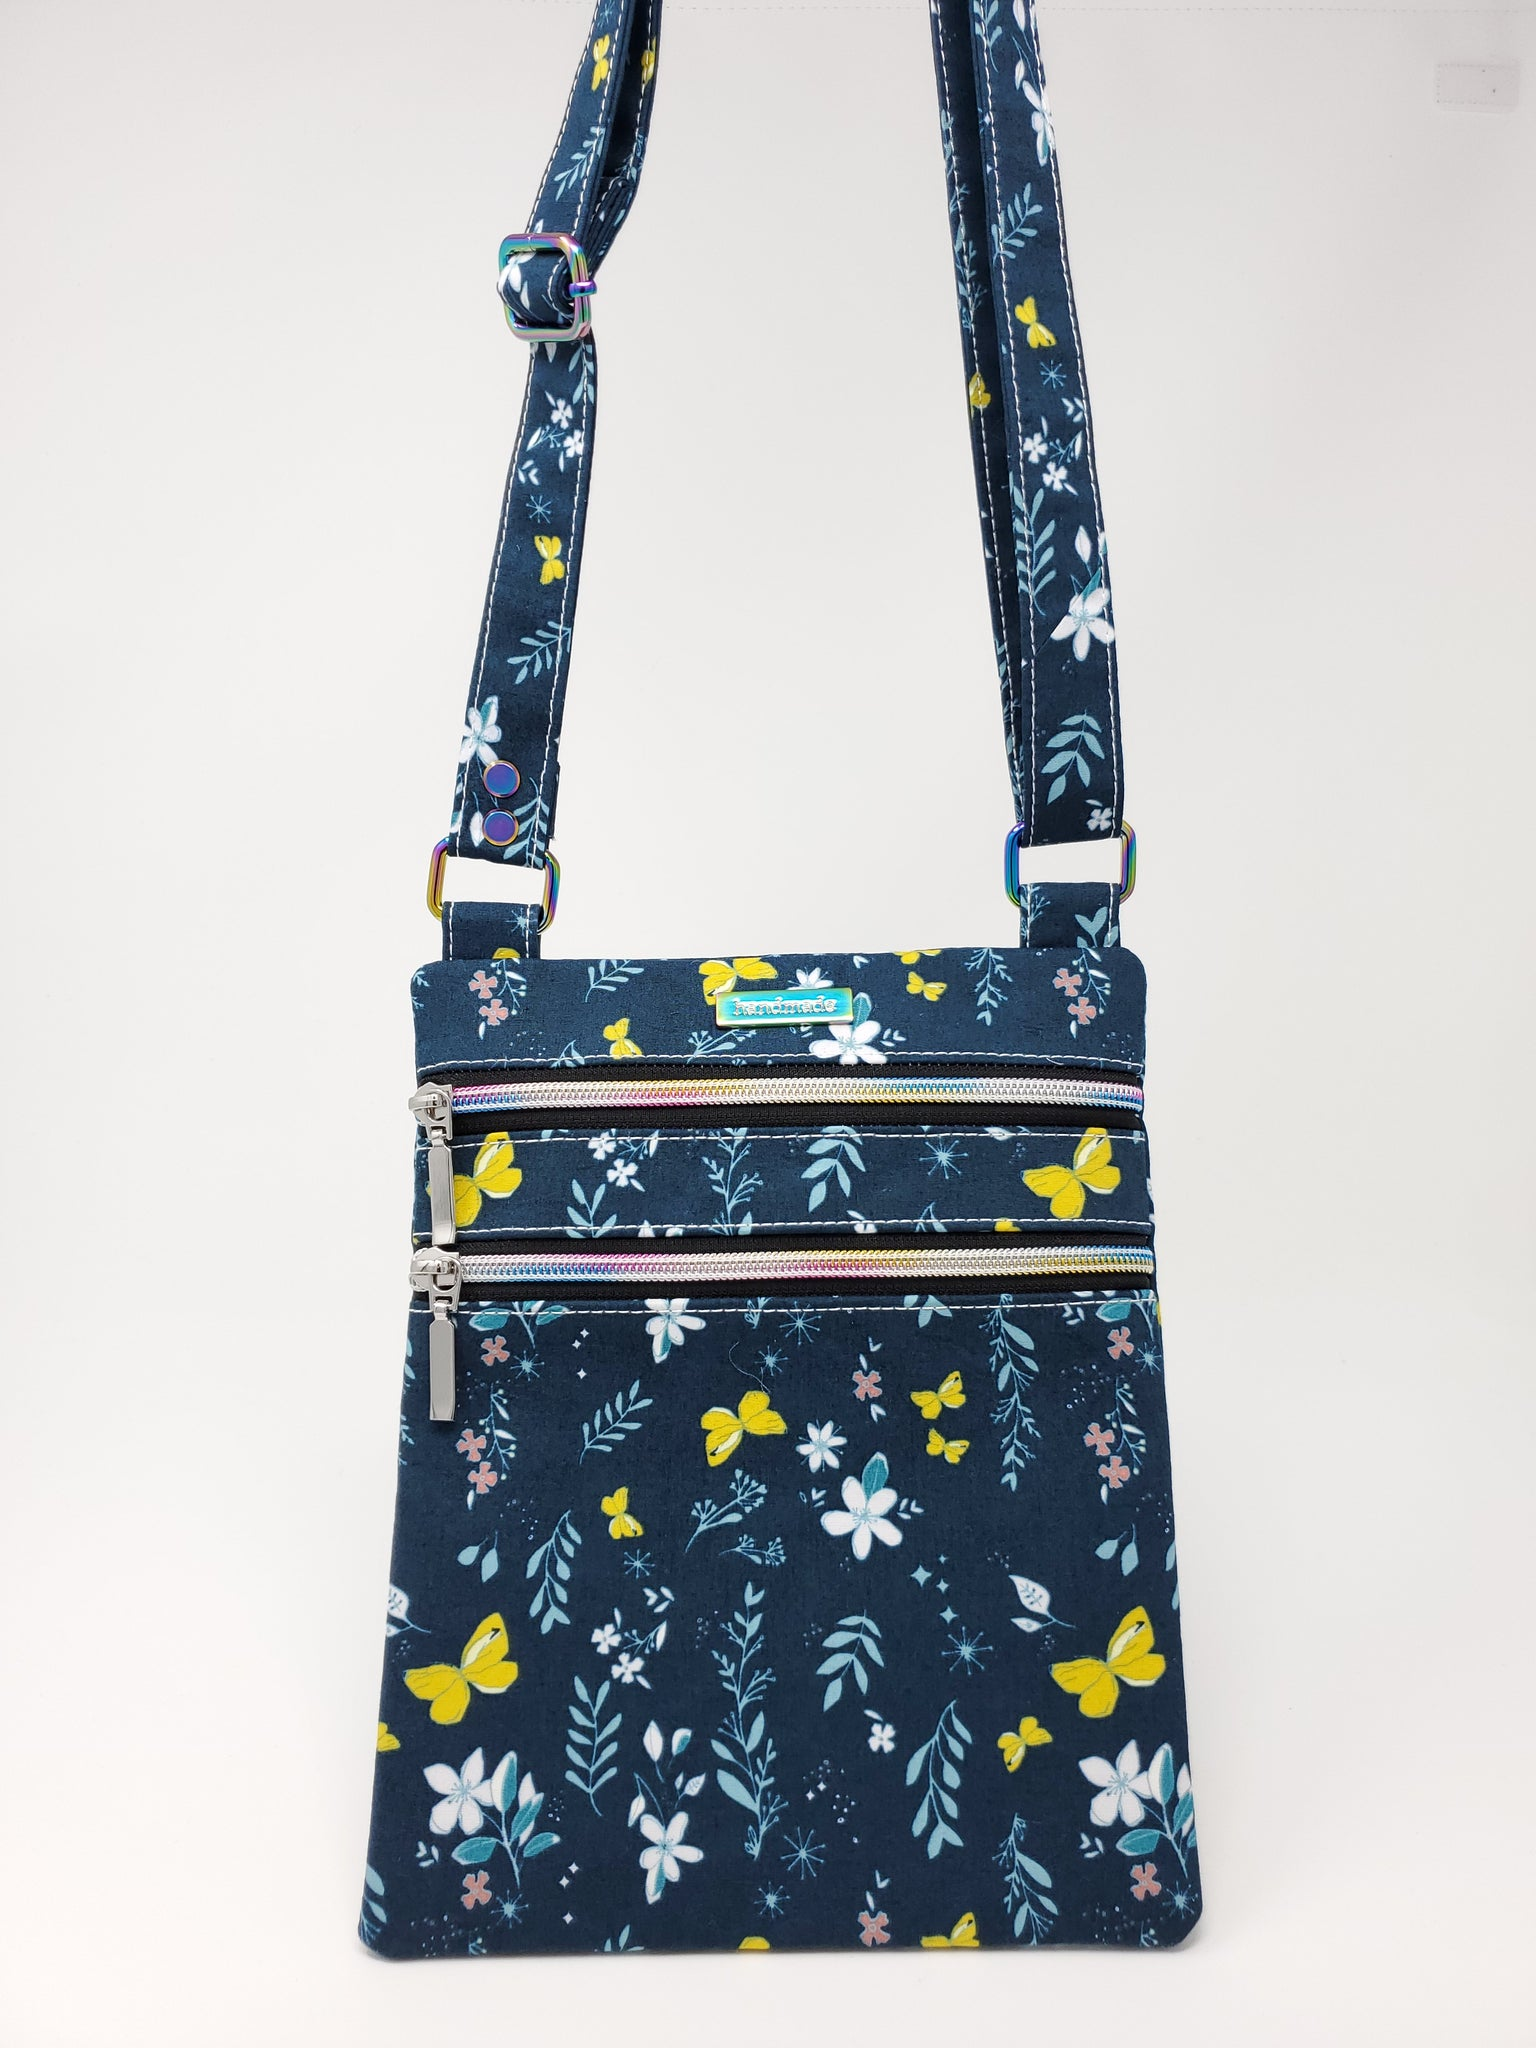 Zip and Go Purse - Navy Butterflies (custom mods)